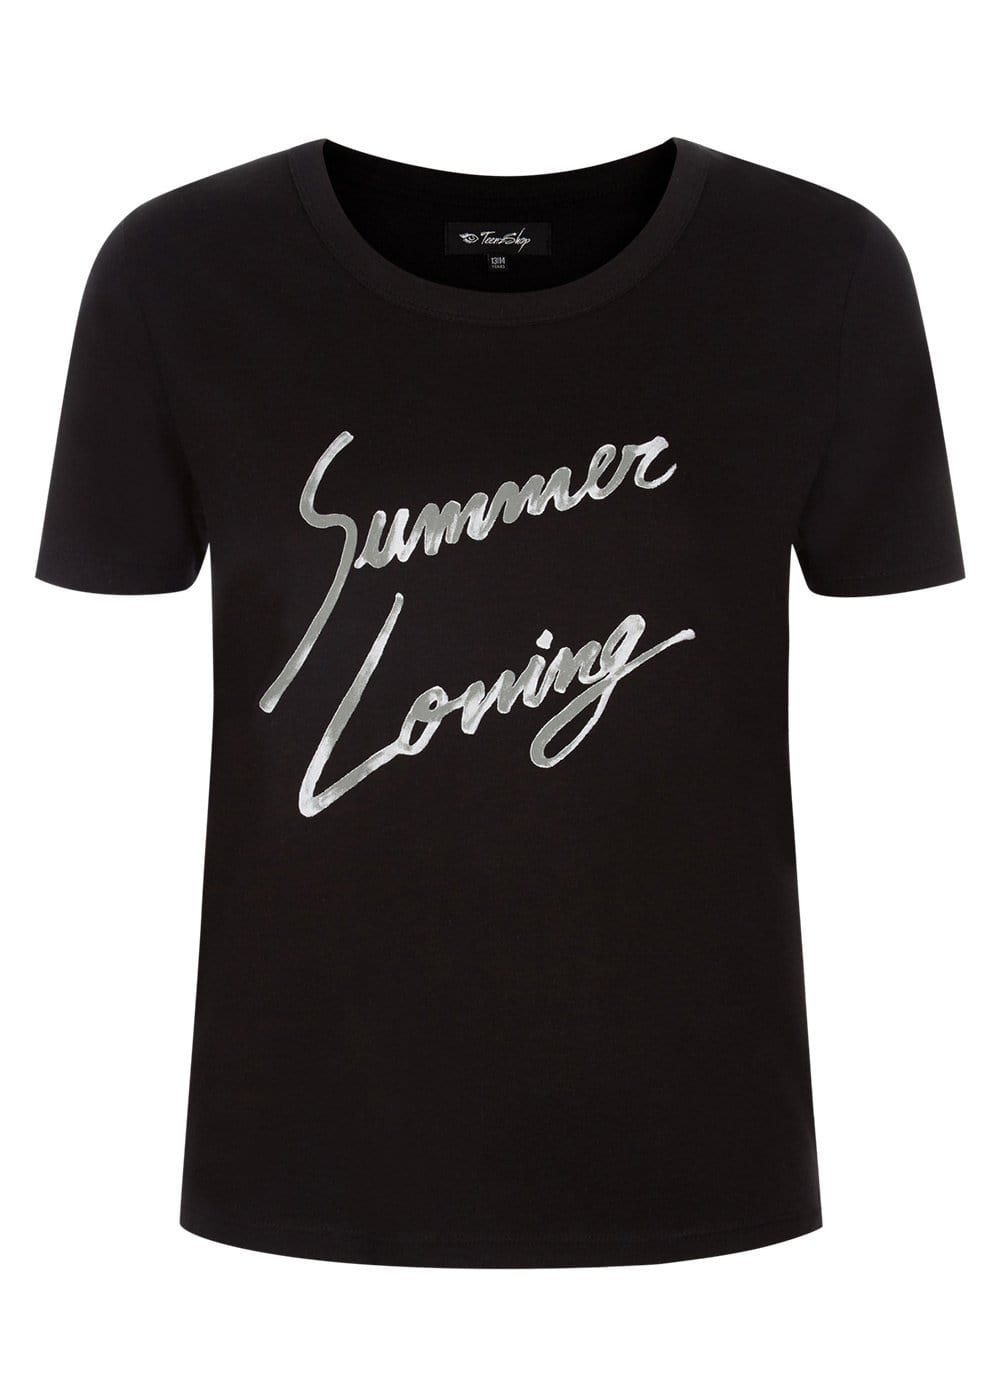 Teenzshop Youth Girls Black Summer Loving Slogan T-shirt